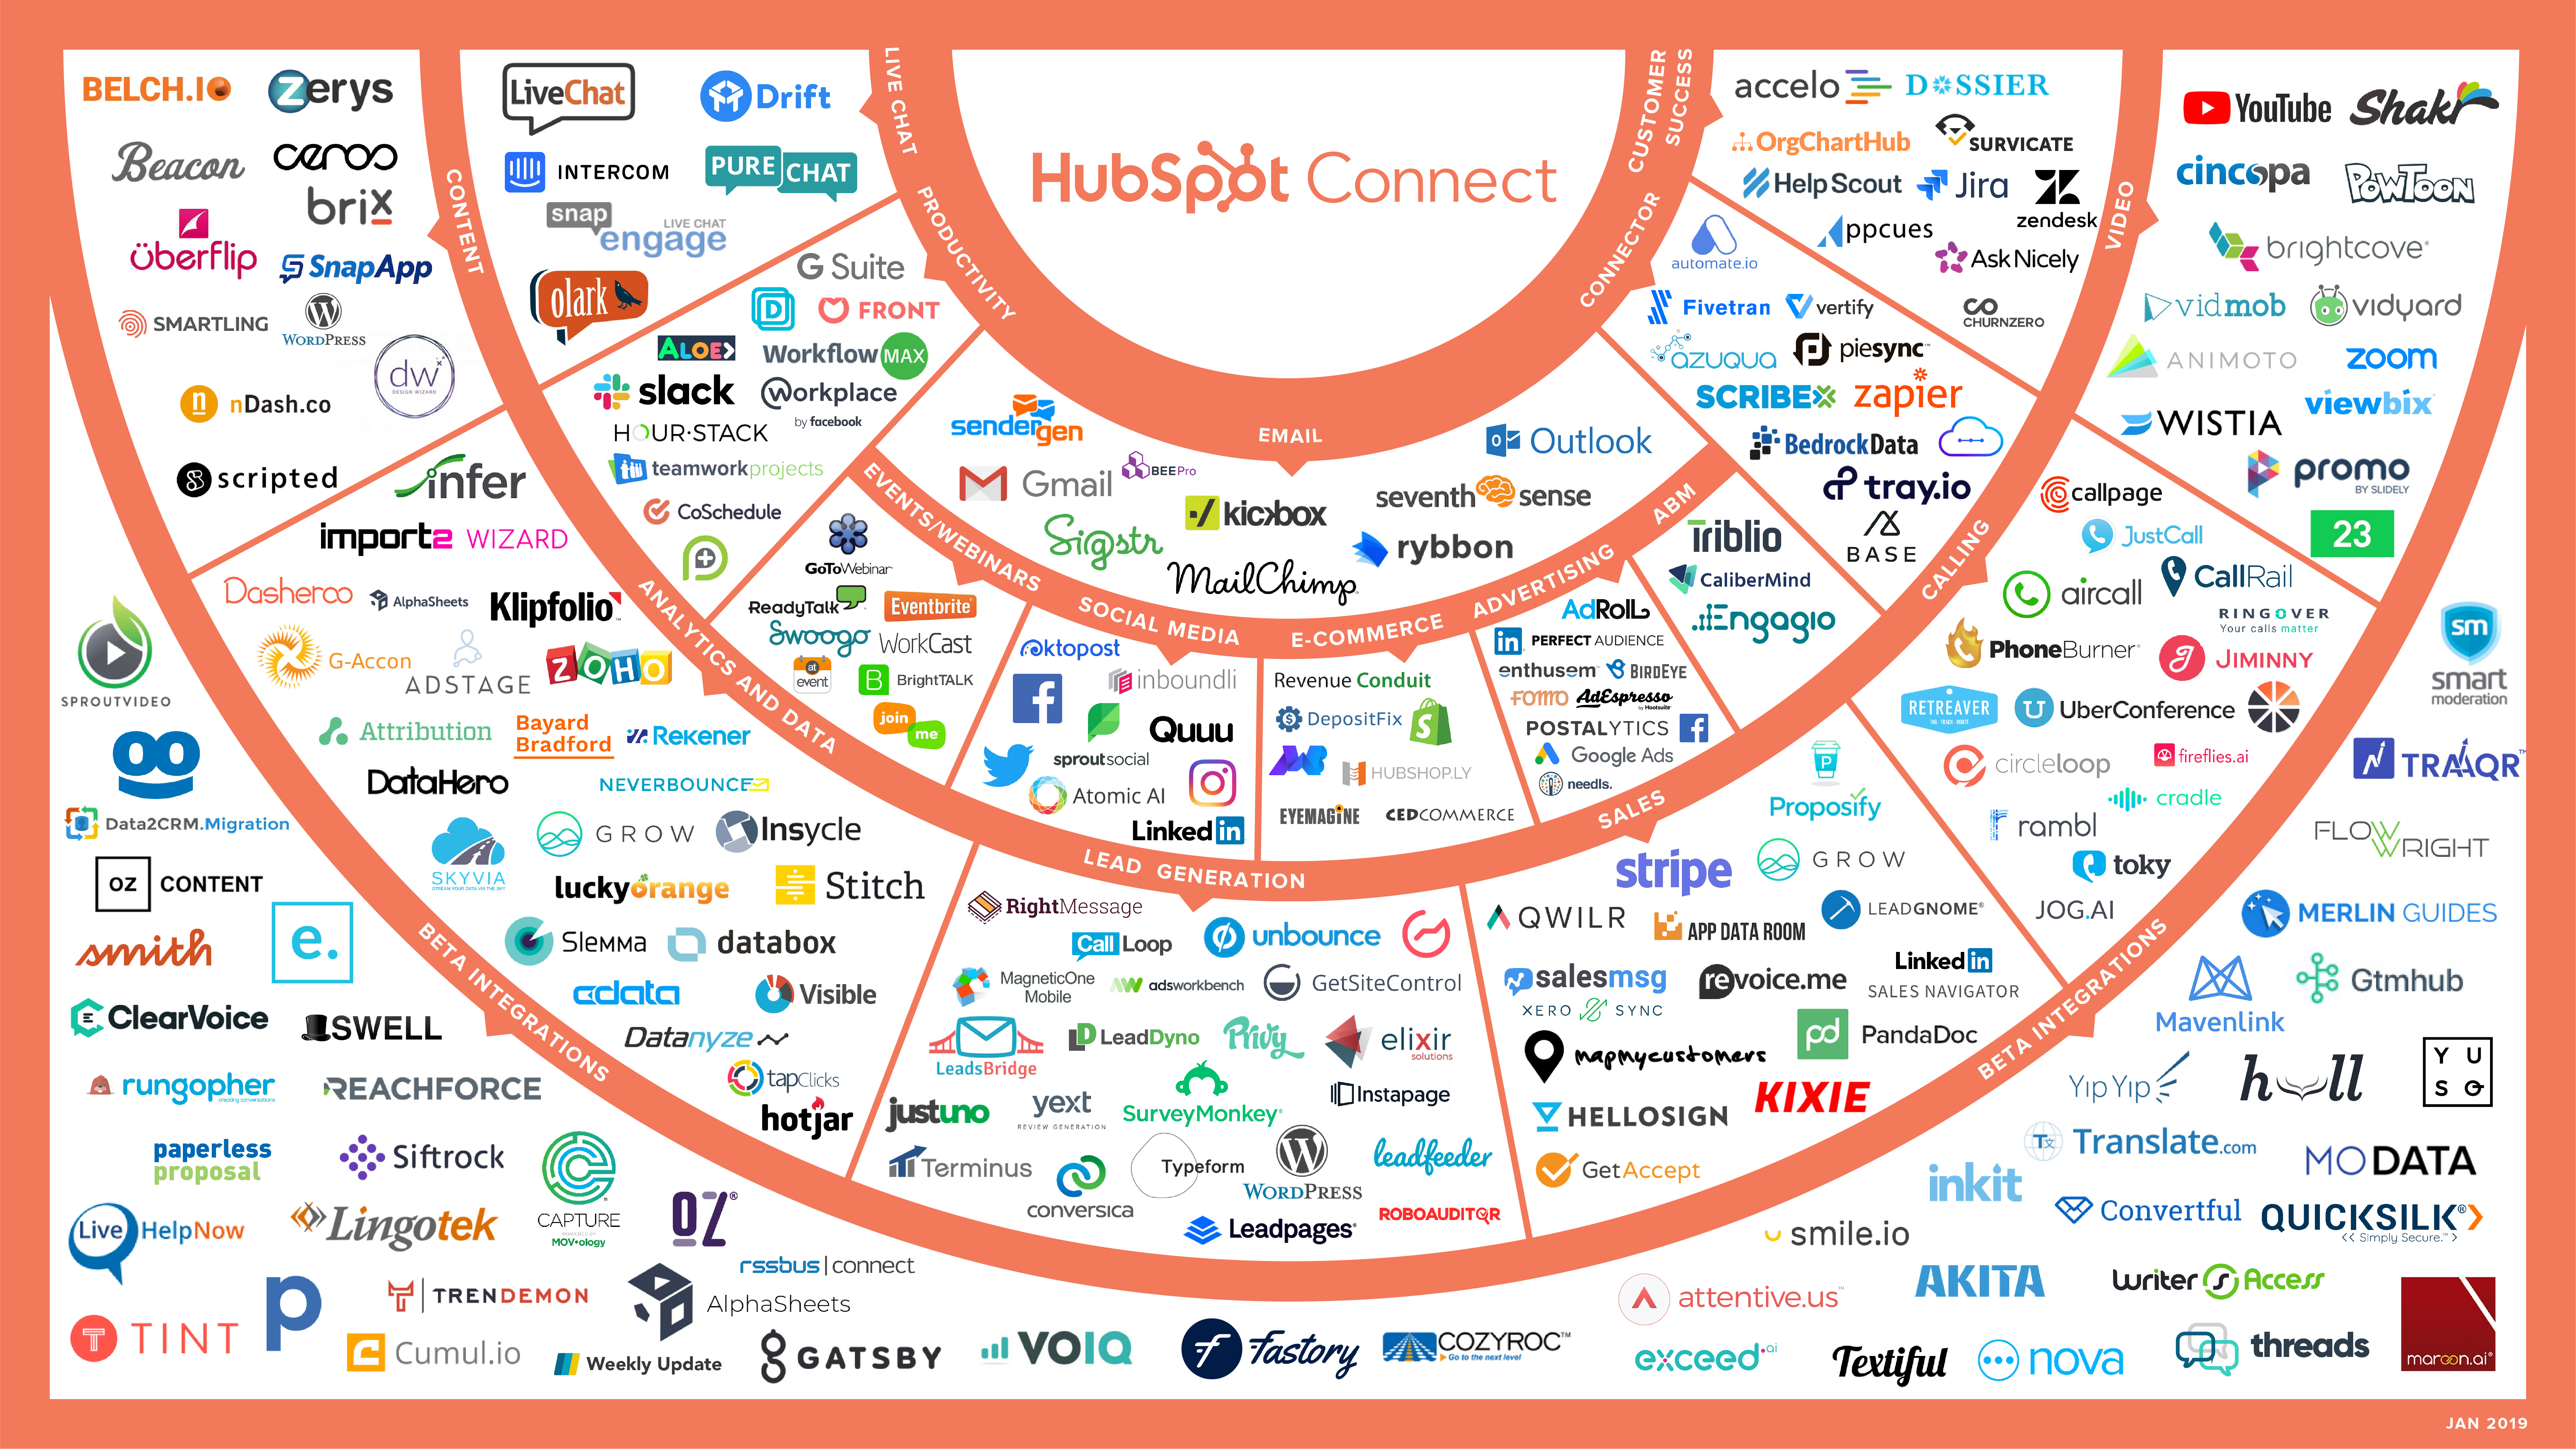 HubspotConnections_large (2)